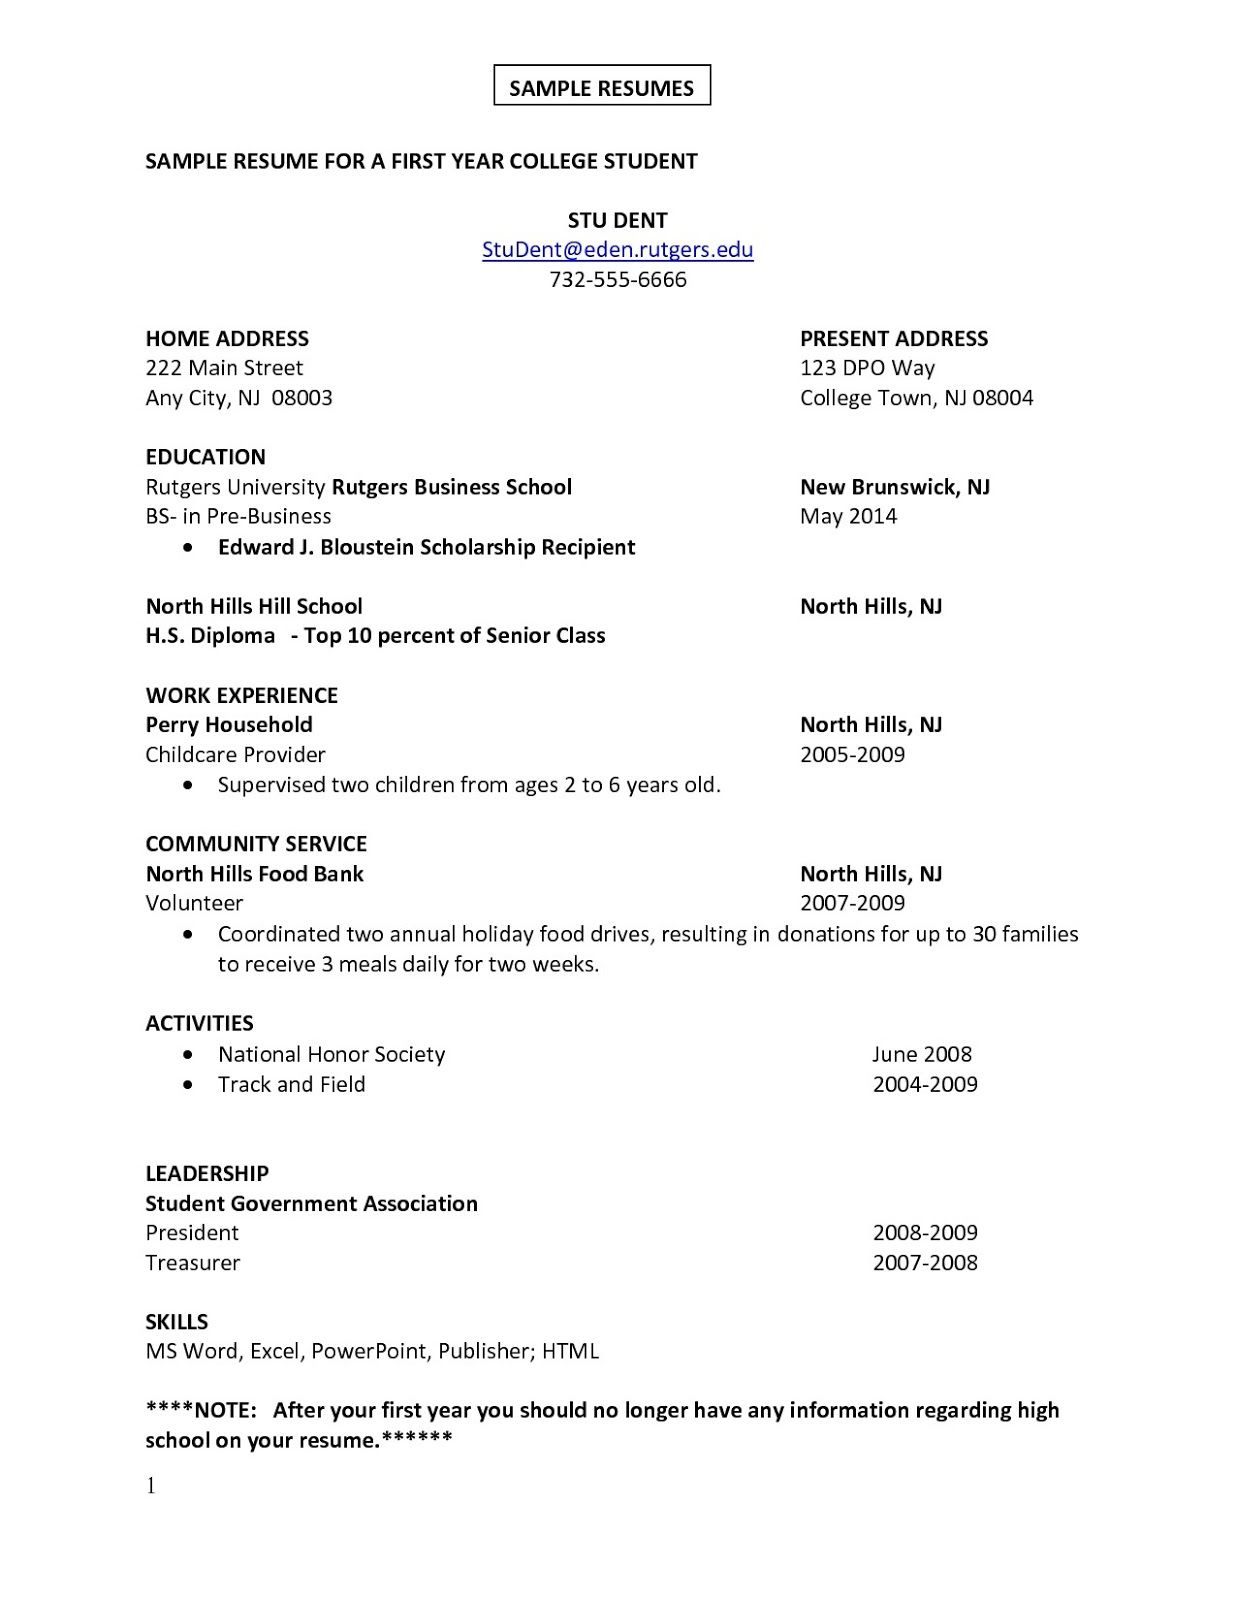 First Job Sample Resume Sample Resumes Sample Resume Format